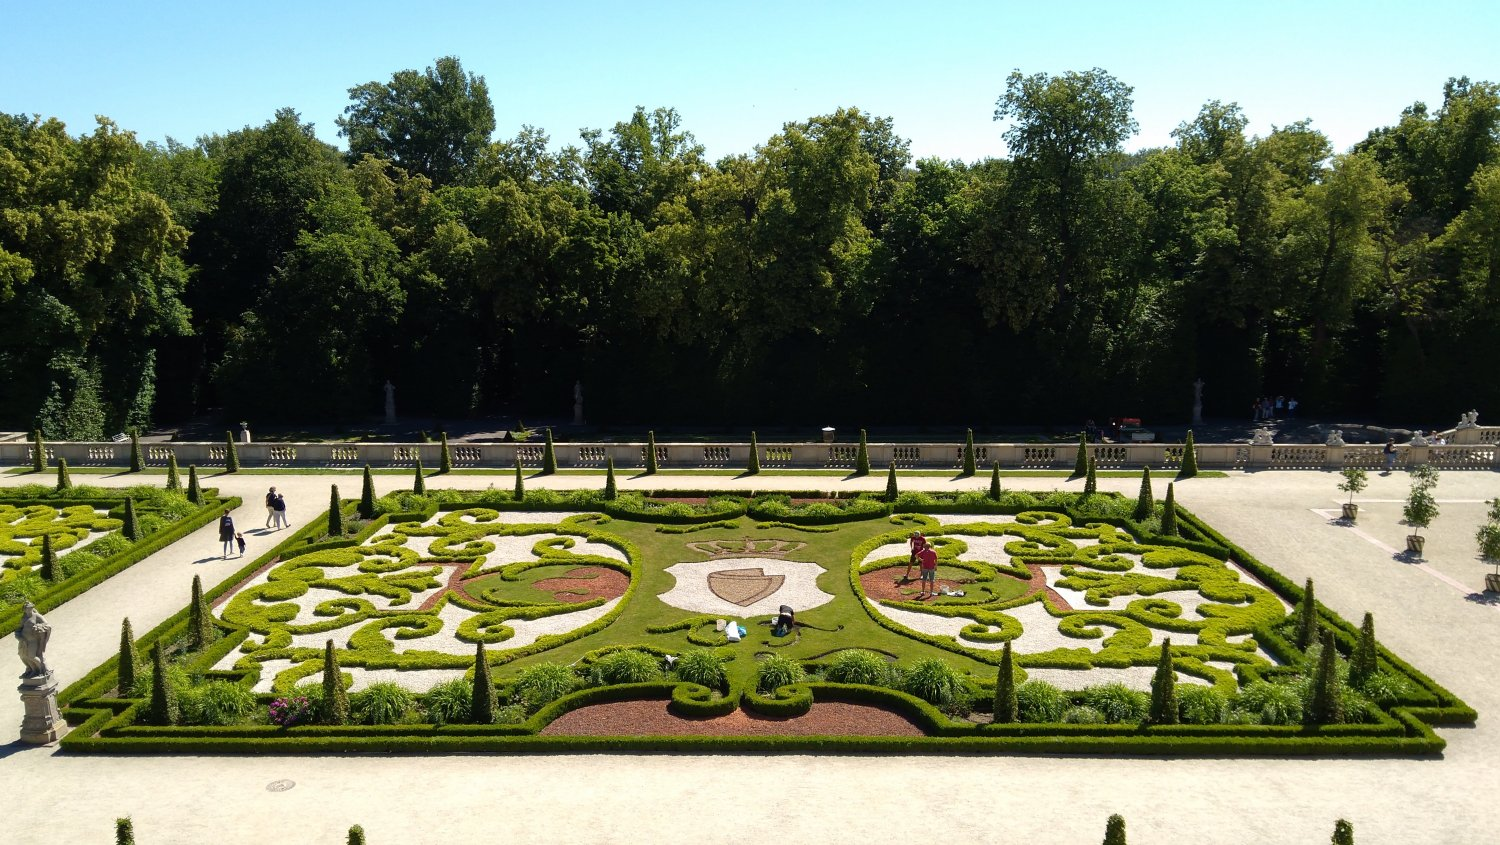 The royal garden at Wilanów – an EBTS introduction